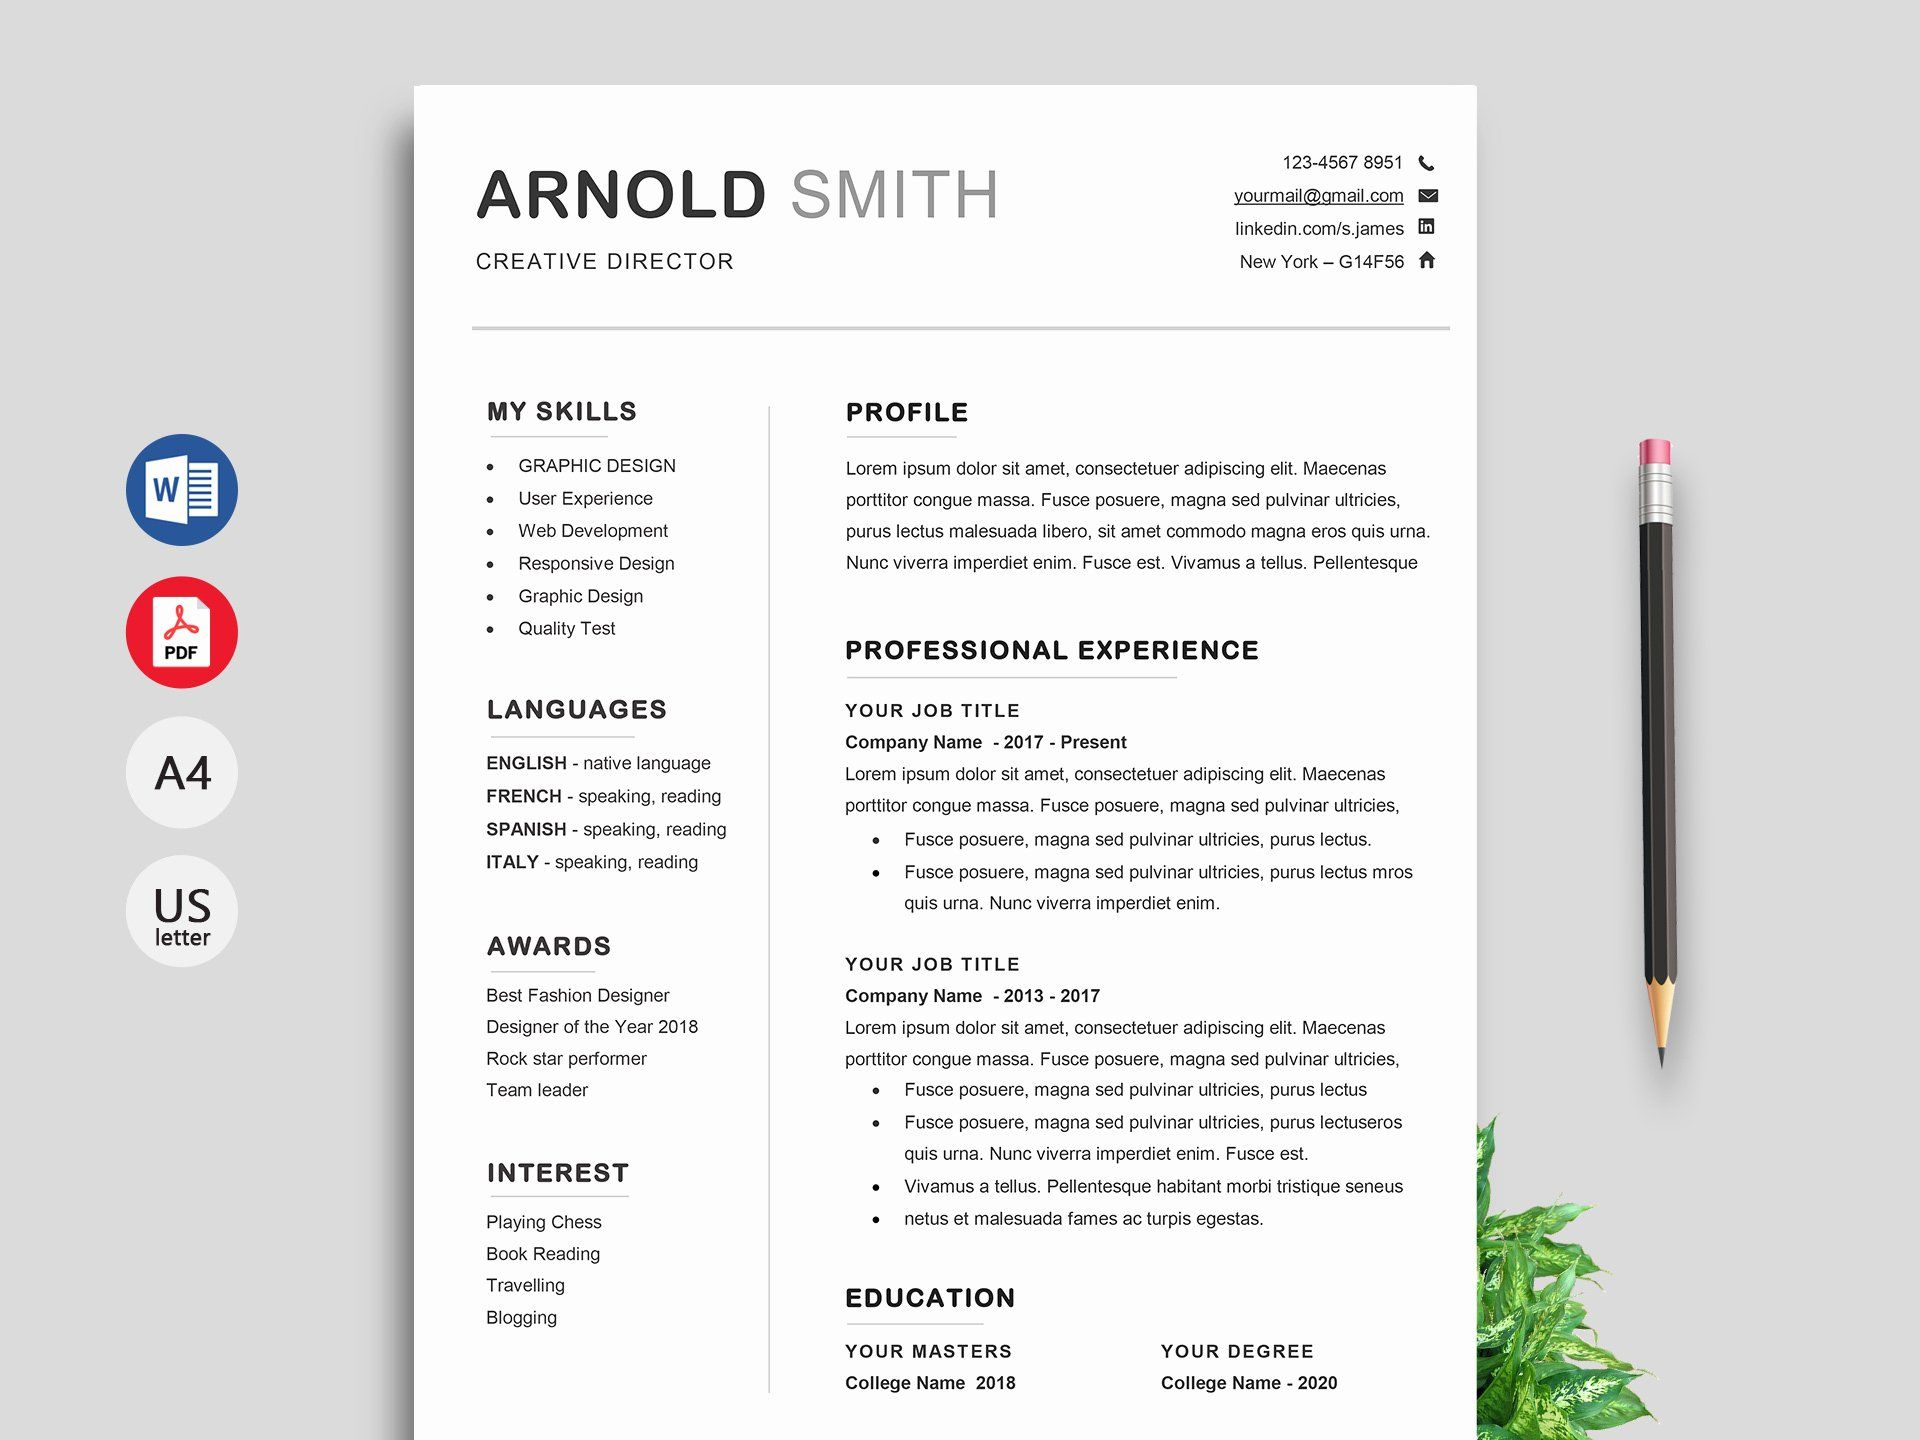 Resume Template Download Word Free Beautiful Free Resume Cv Templates In Word For Resume Template Word Downloadable Resume Template Free Resume Template Word